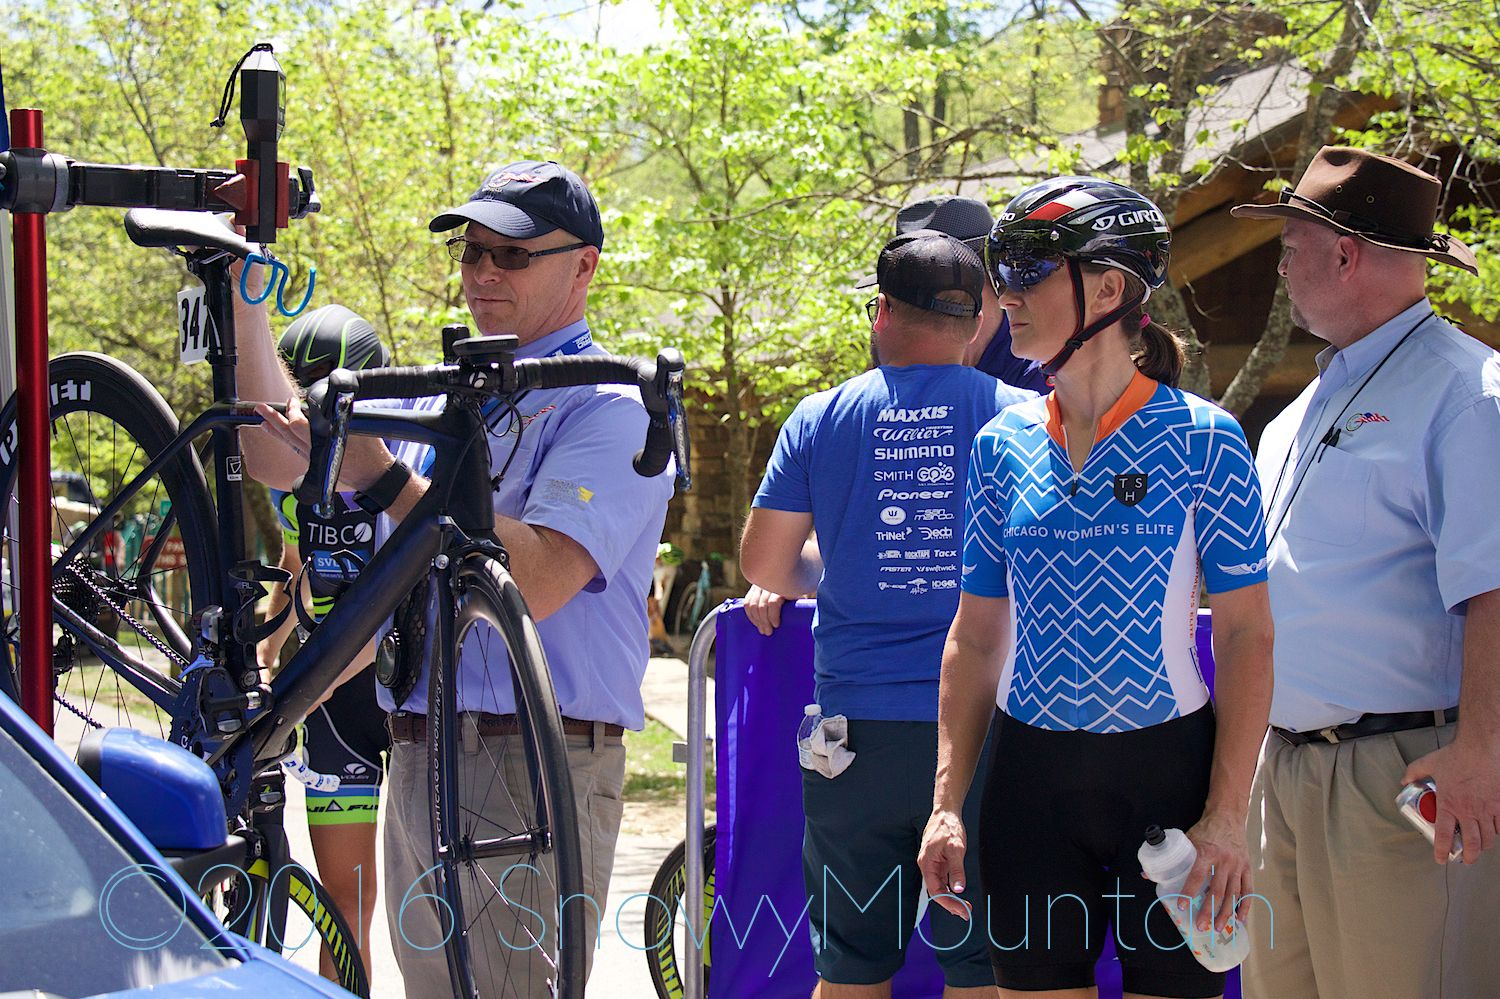 Photo by SnowyMountain Photography.  Since UCI regulations applied for Stage 1,riders were required to present themselves to bike check 15 minutes before their posted start time. Bikes were required to weigh in at 6.8kg or more to meet regulation.